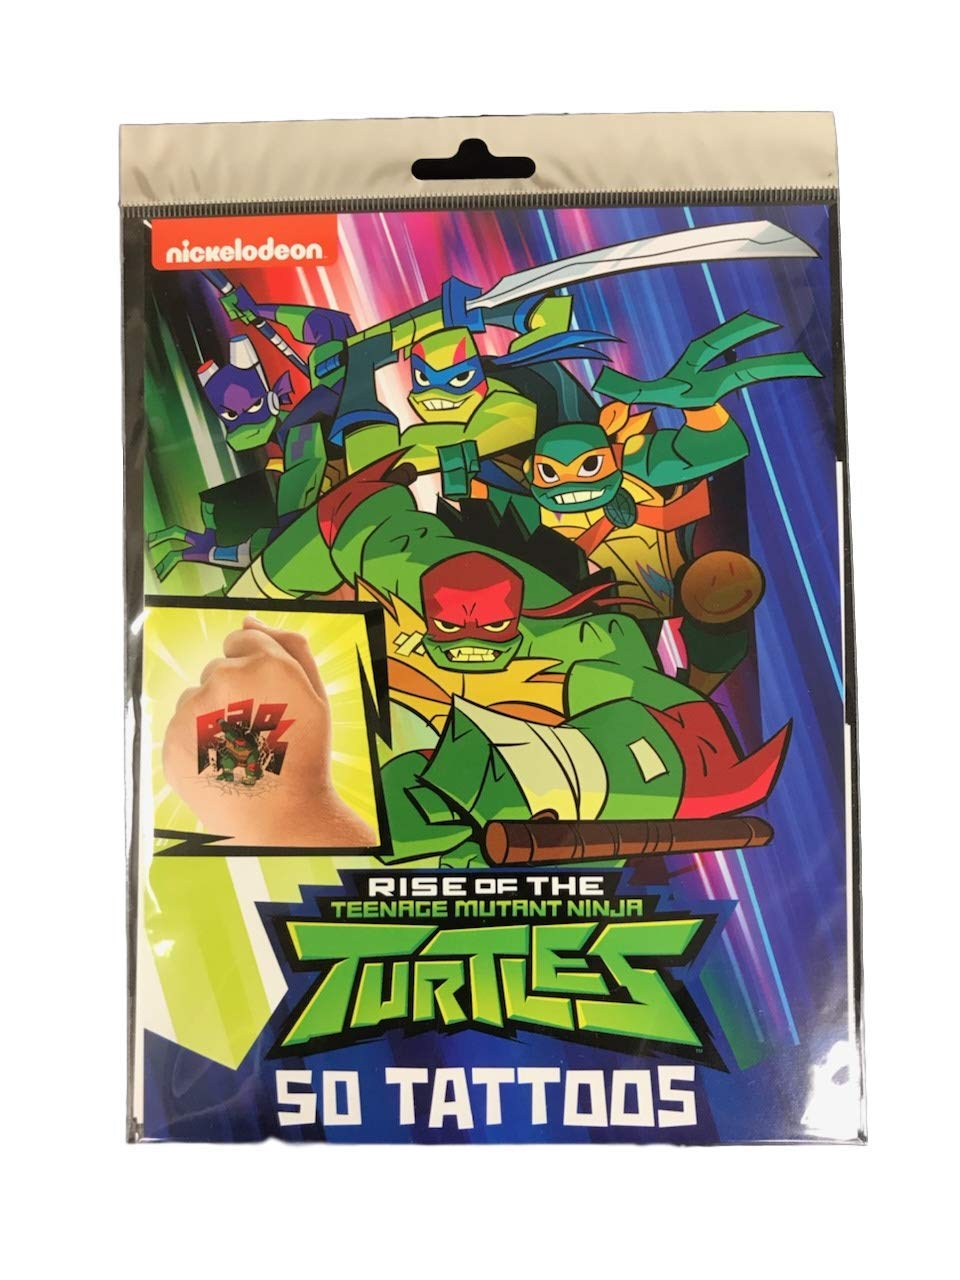 Savvi 50 Temporary Tattoos, Nickelodeons Teenage Mutant Ninja Turtles, 3-pack (150 Tattoos)